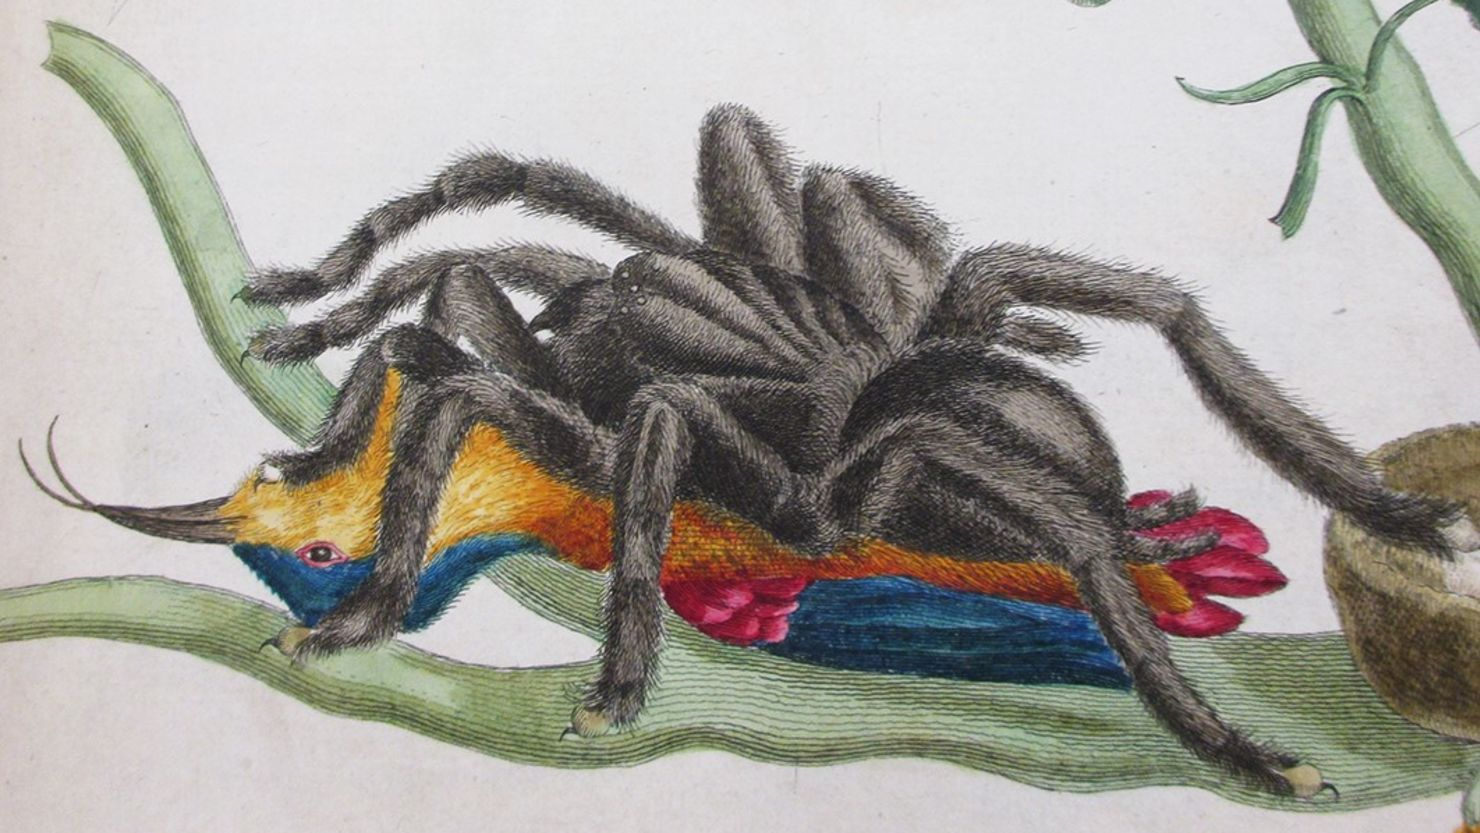 Illustration of bird eating spider by Maria Sybilla Merian